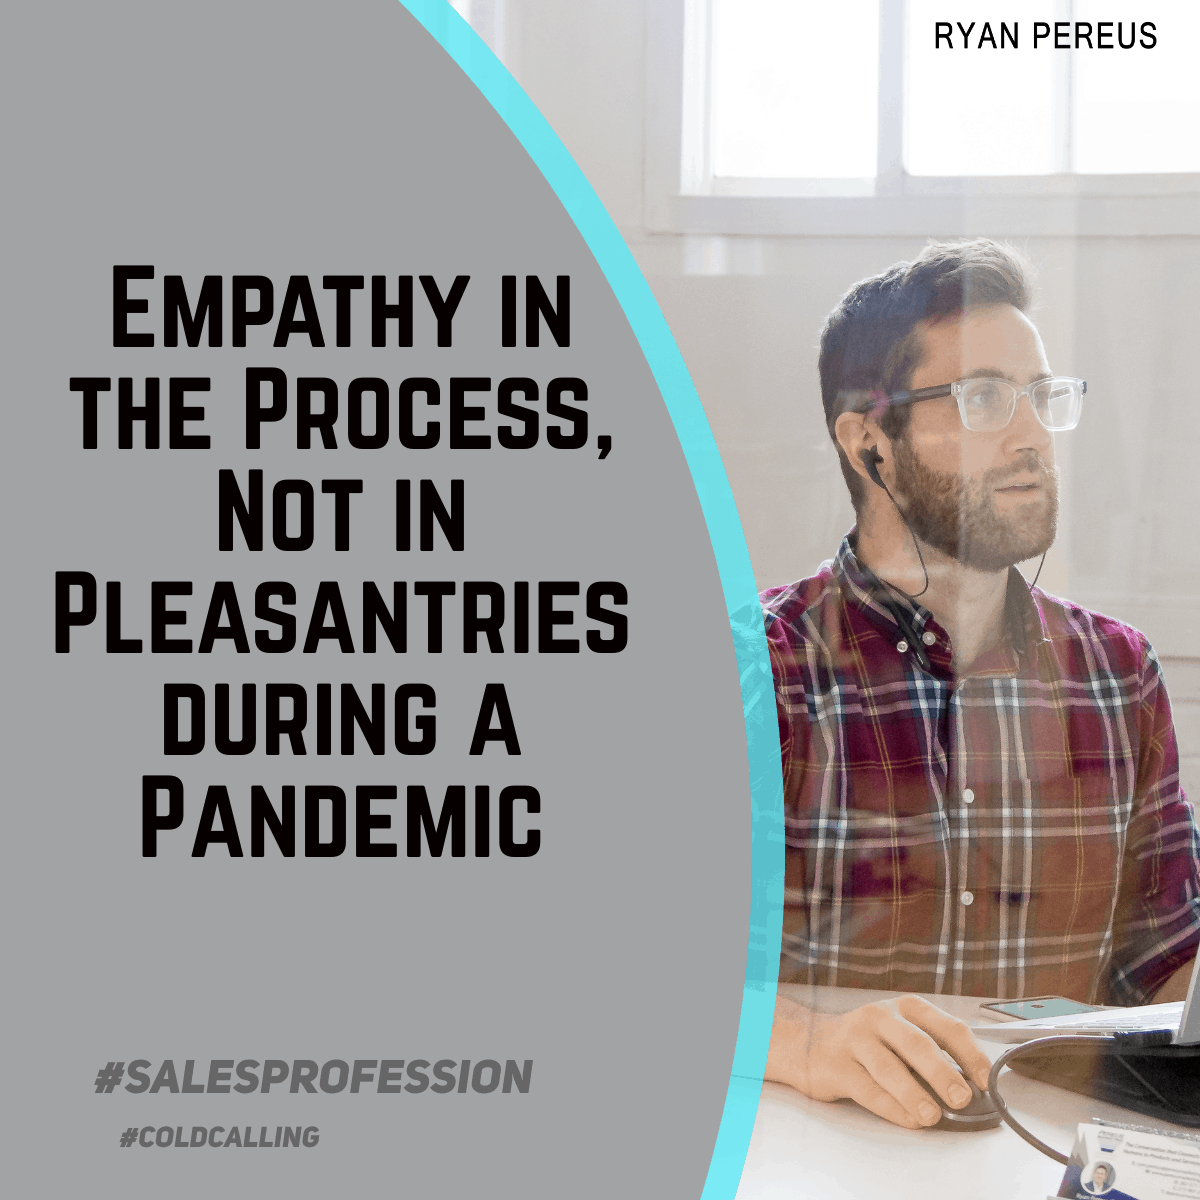 Empathy in the Process, Not in Pleasantries during the Pandemic